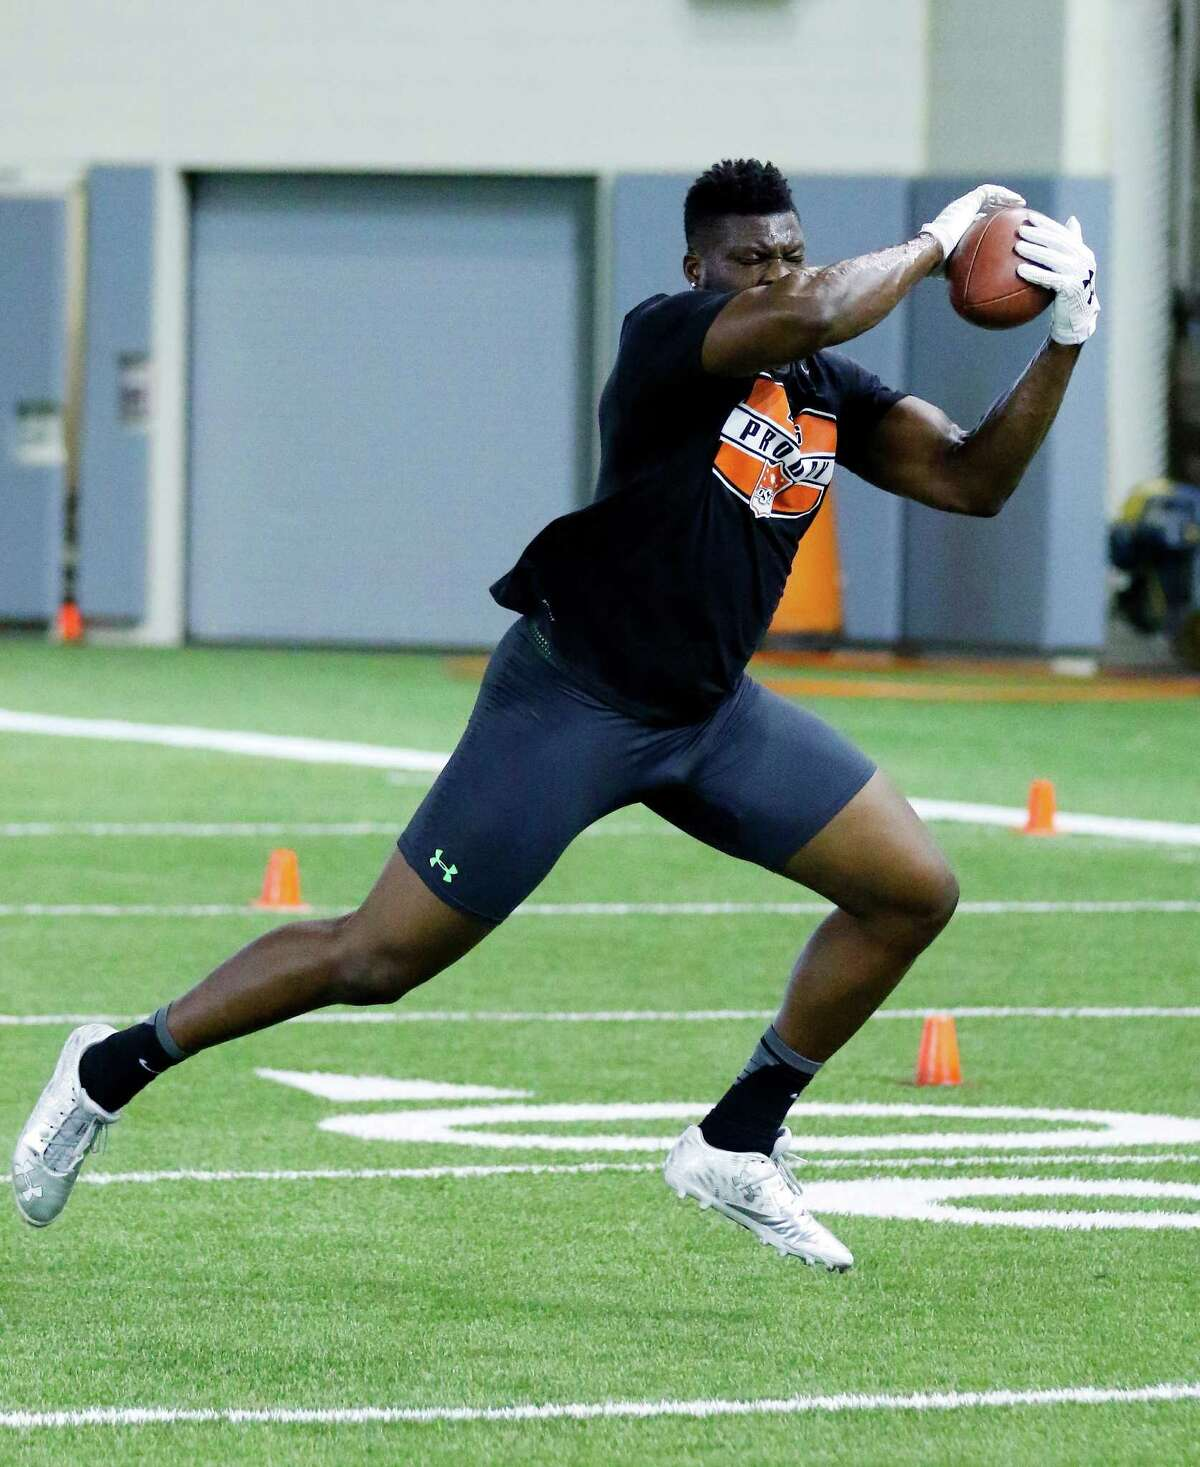 Oklahoma State's Emmanuel Ogbah catches a pass during Oklahoma State's NFL Football Pro Day at the Oklahoma State indoor practice facility in Stillwater, Okla., Tuesday, March 8, 2016.